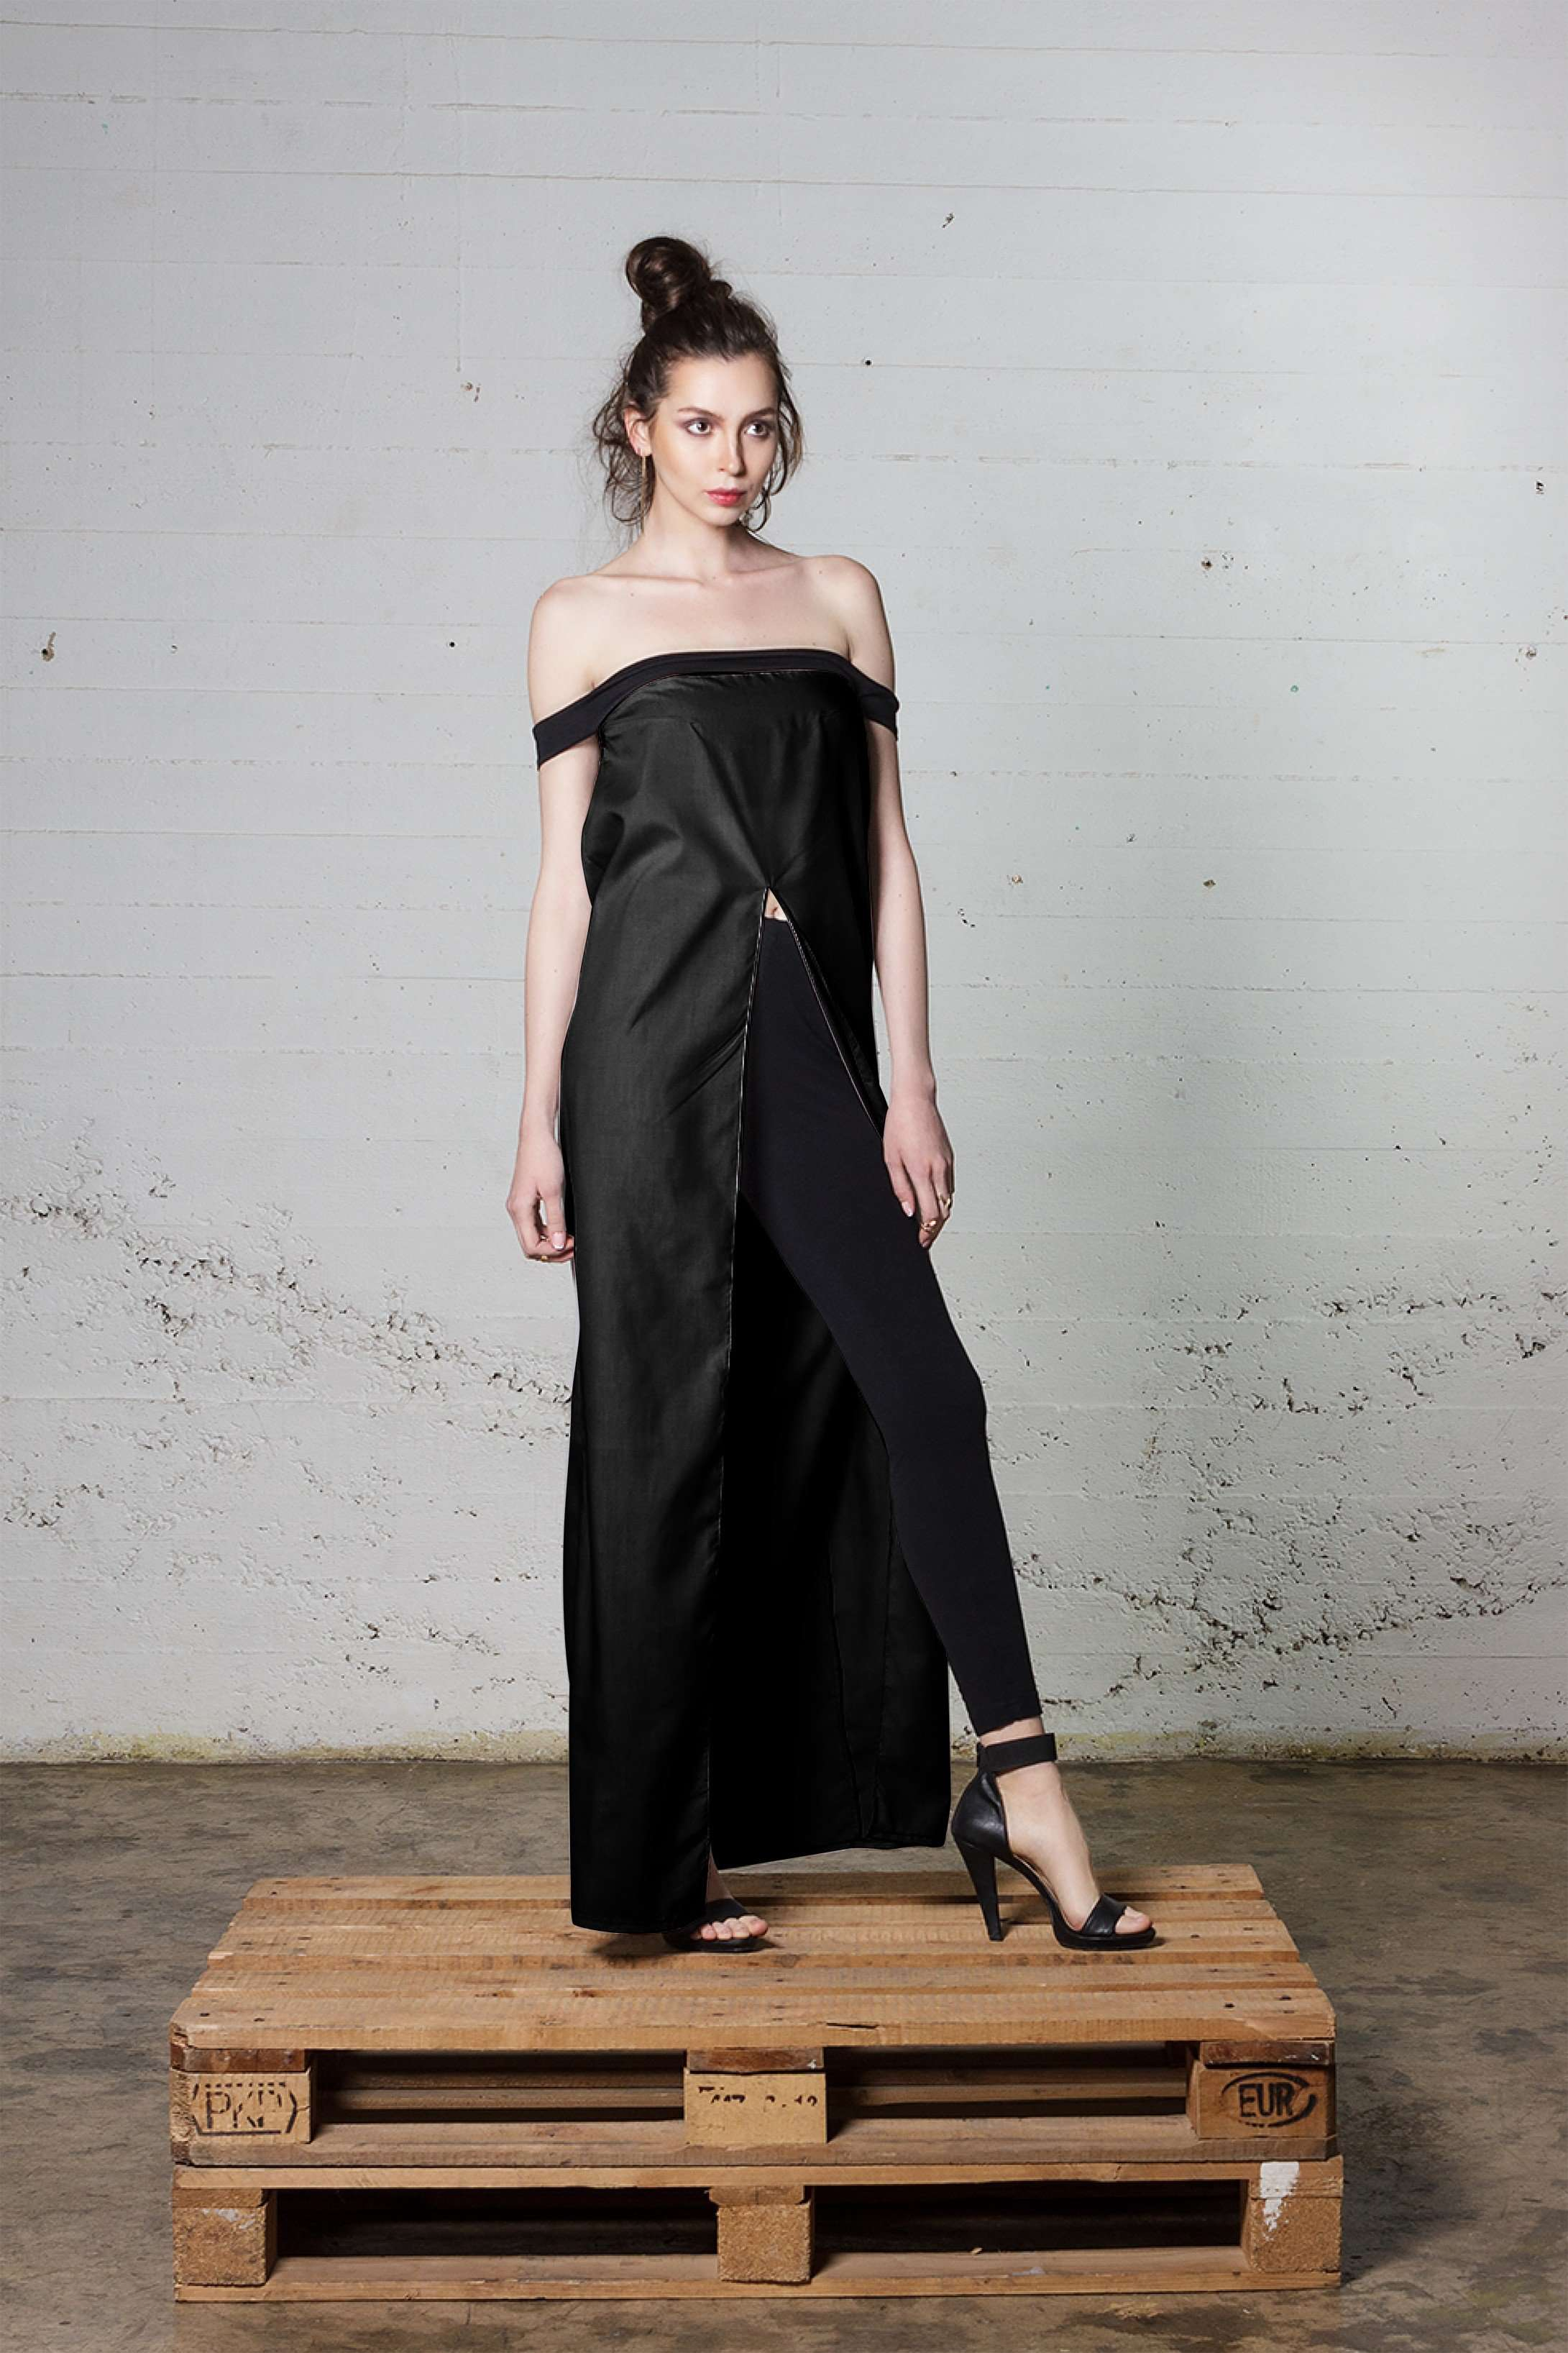 DRESS REF. 0022,Odd By Aj, Curated Designer at Freesigners.com